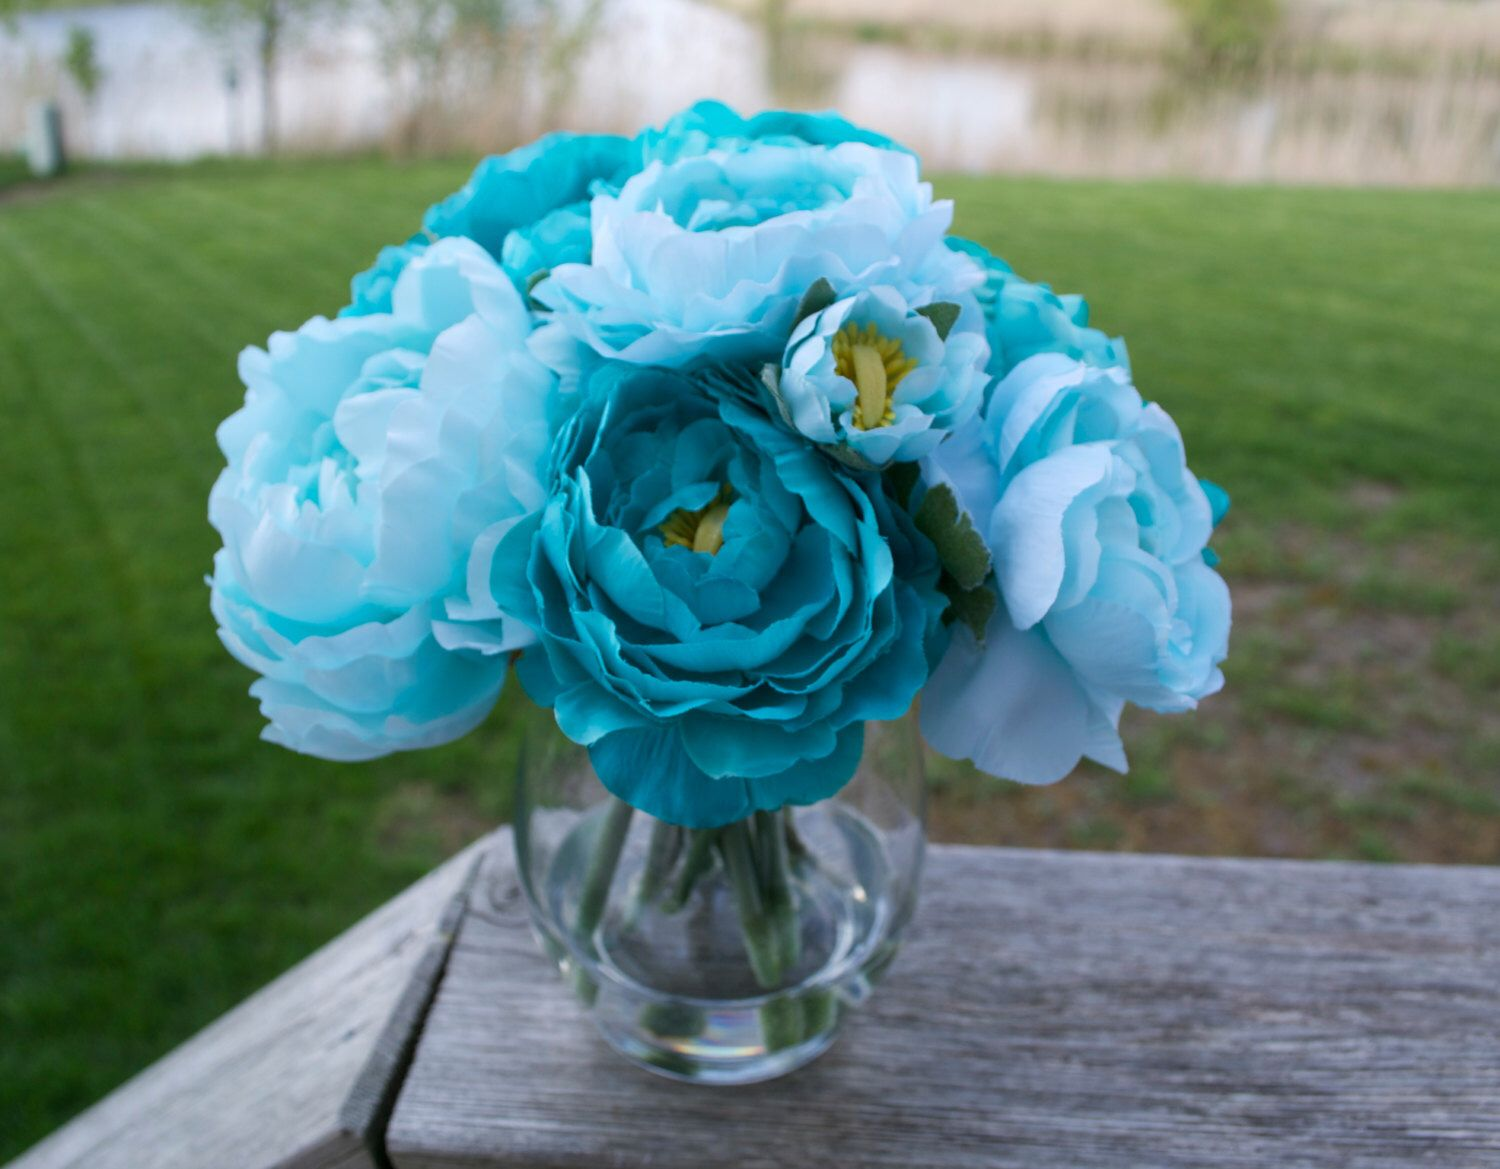 Turquoise & Teal Peonies in Glass Vase with Faux Water